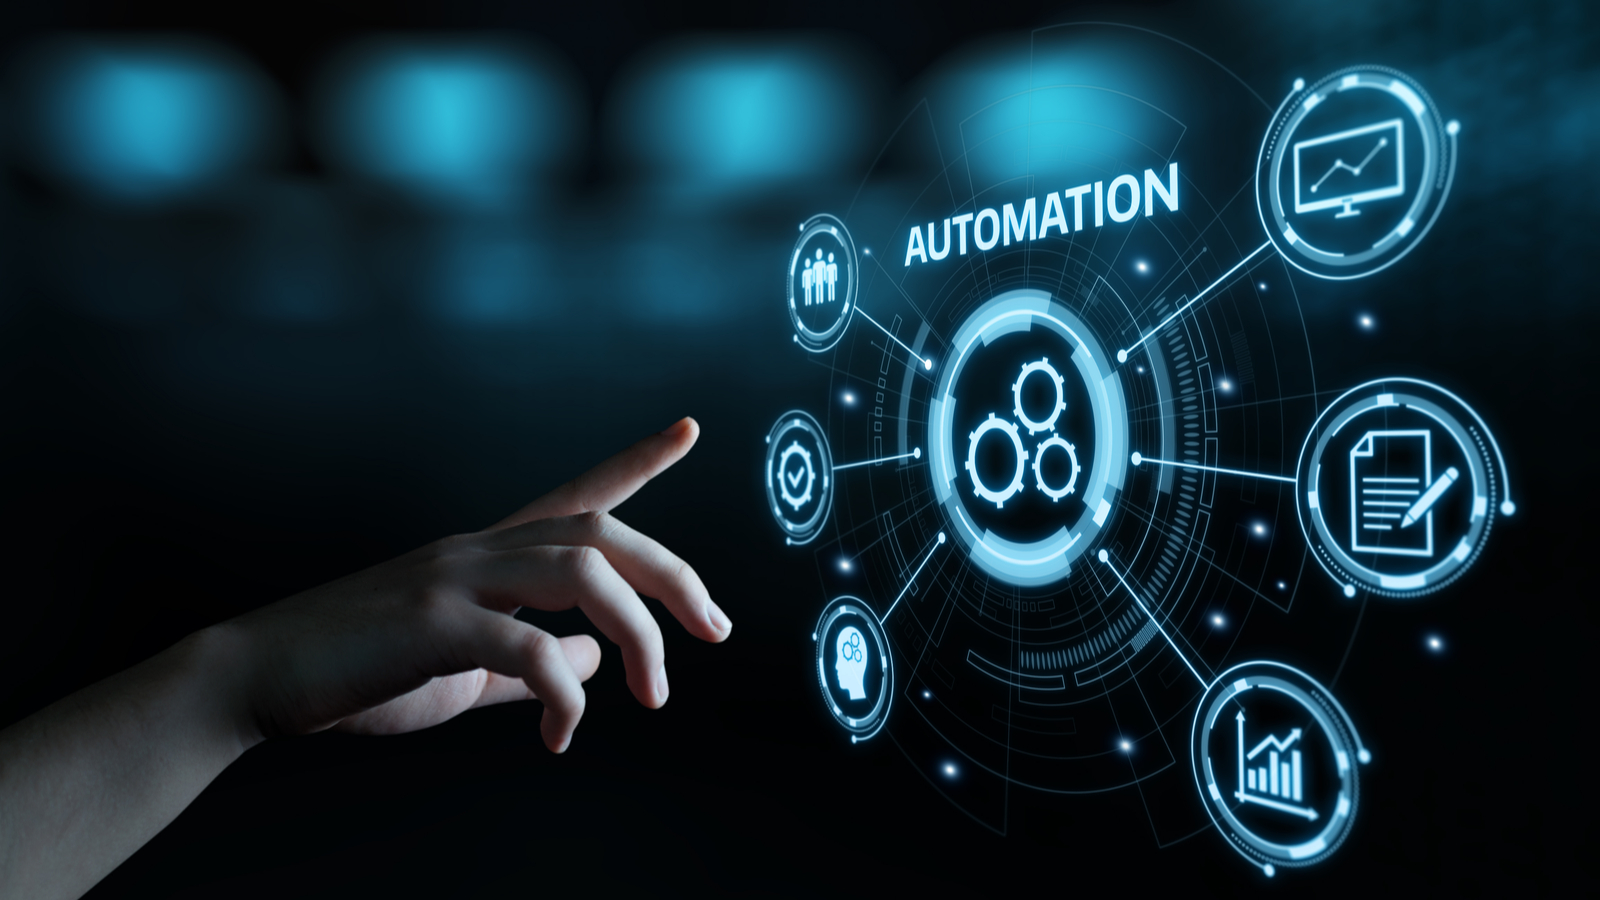 CIOs responsible for governance with increased adoption of Automation